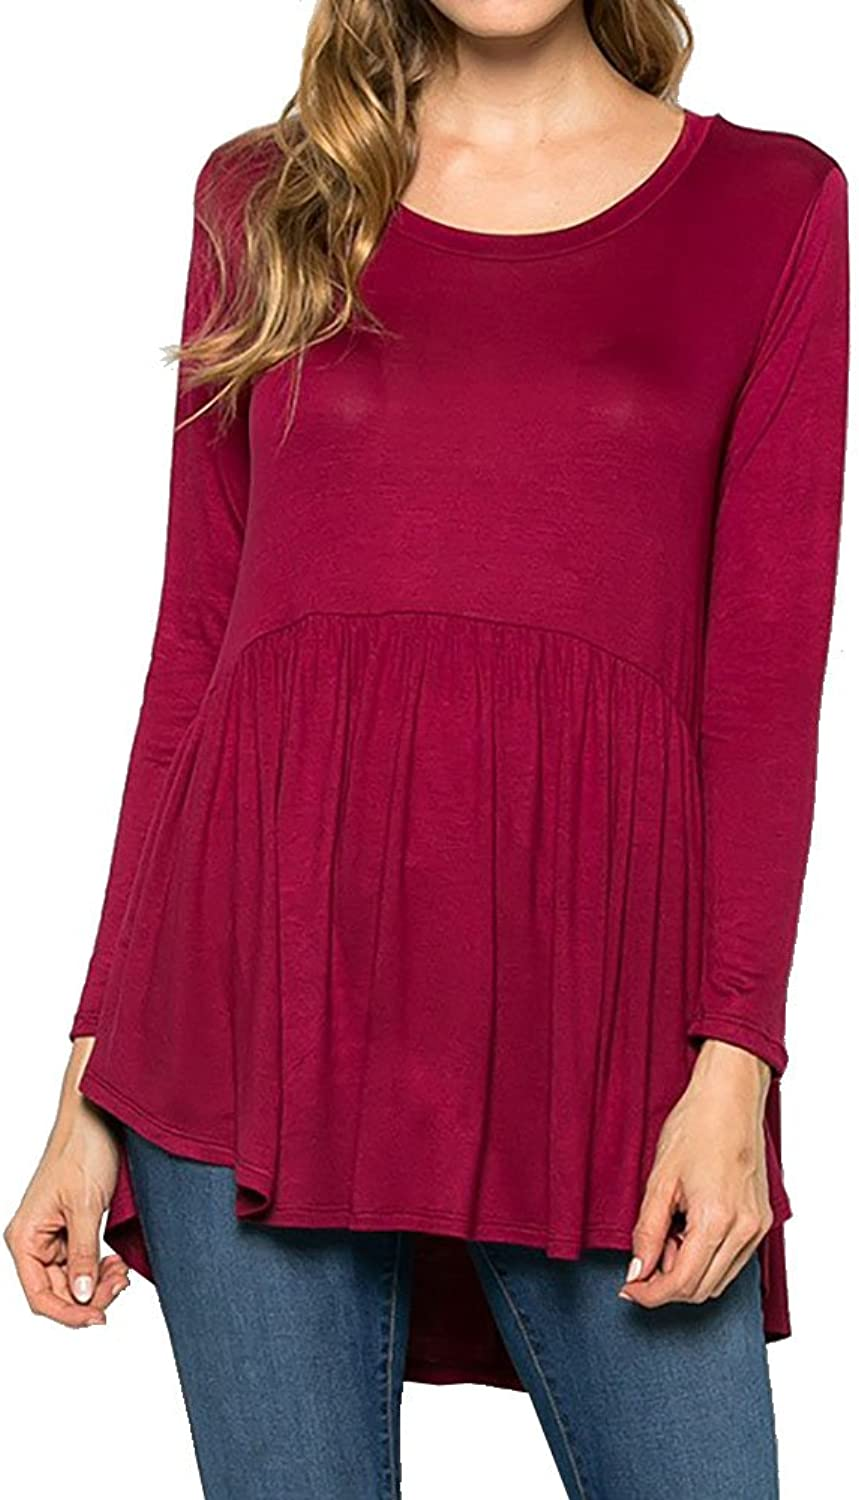 12 Ami Eva Long Sleeve Flowy HiLo Tunic Top  Made in USA